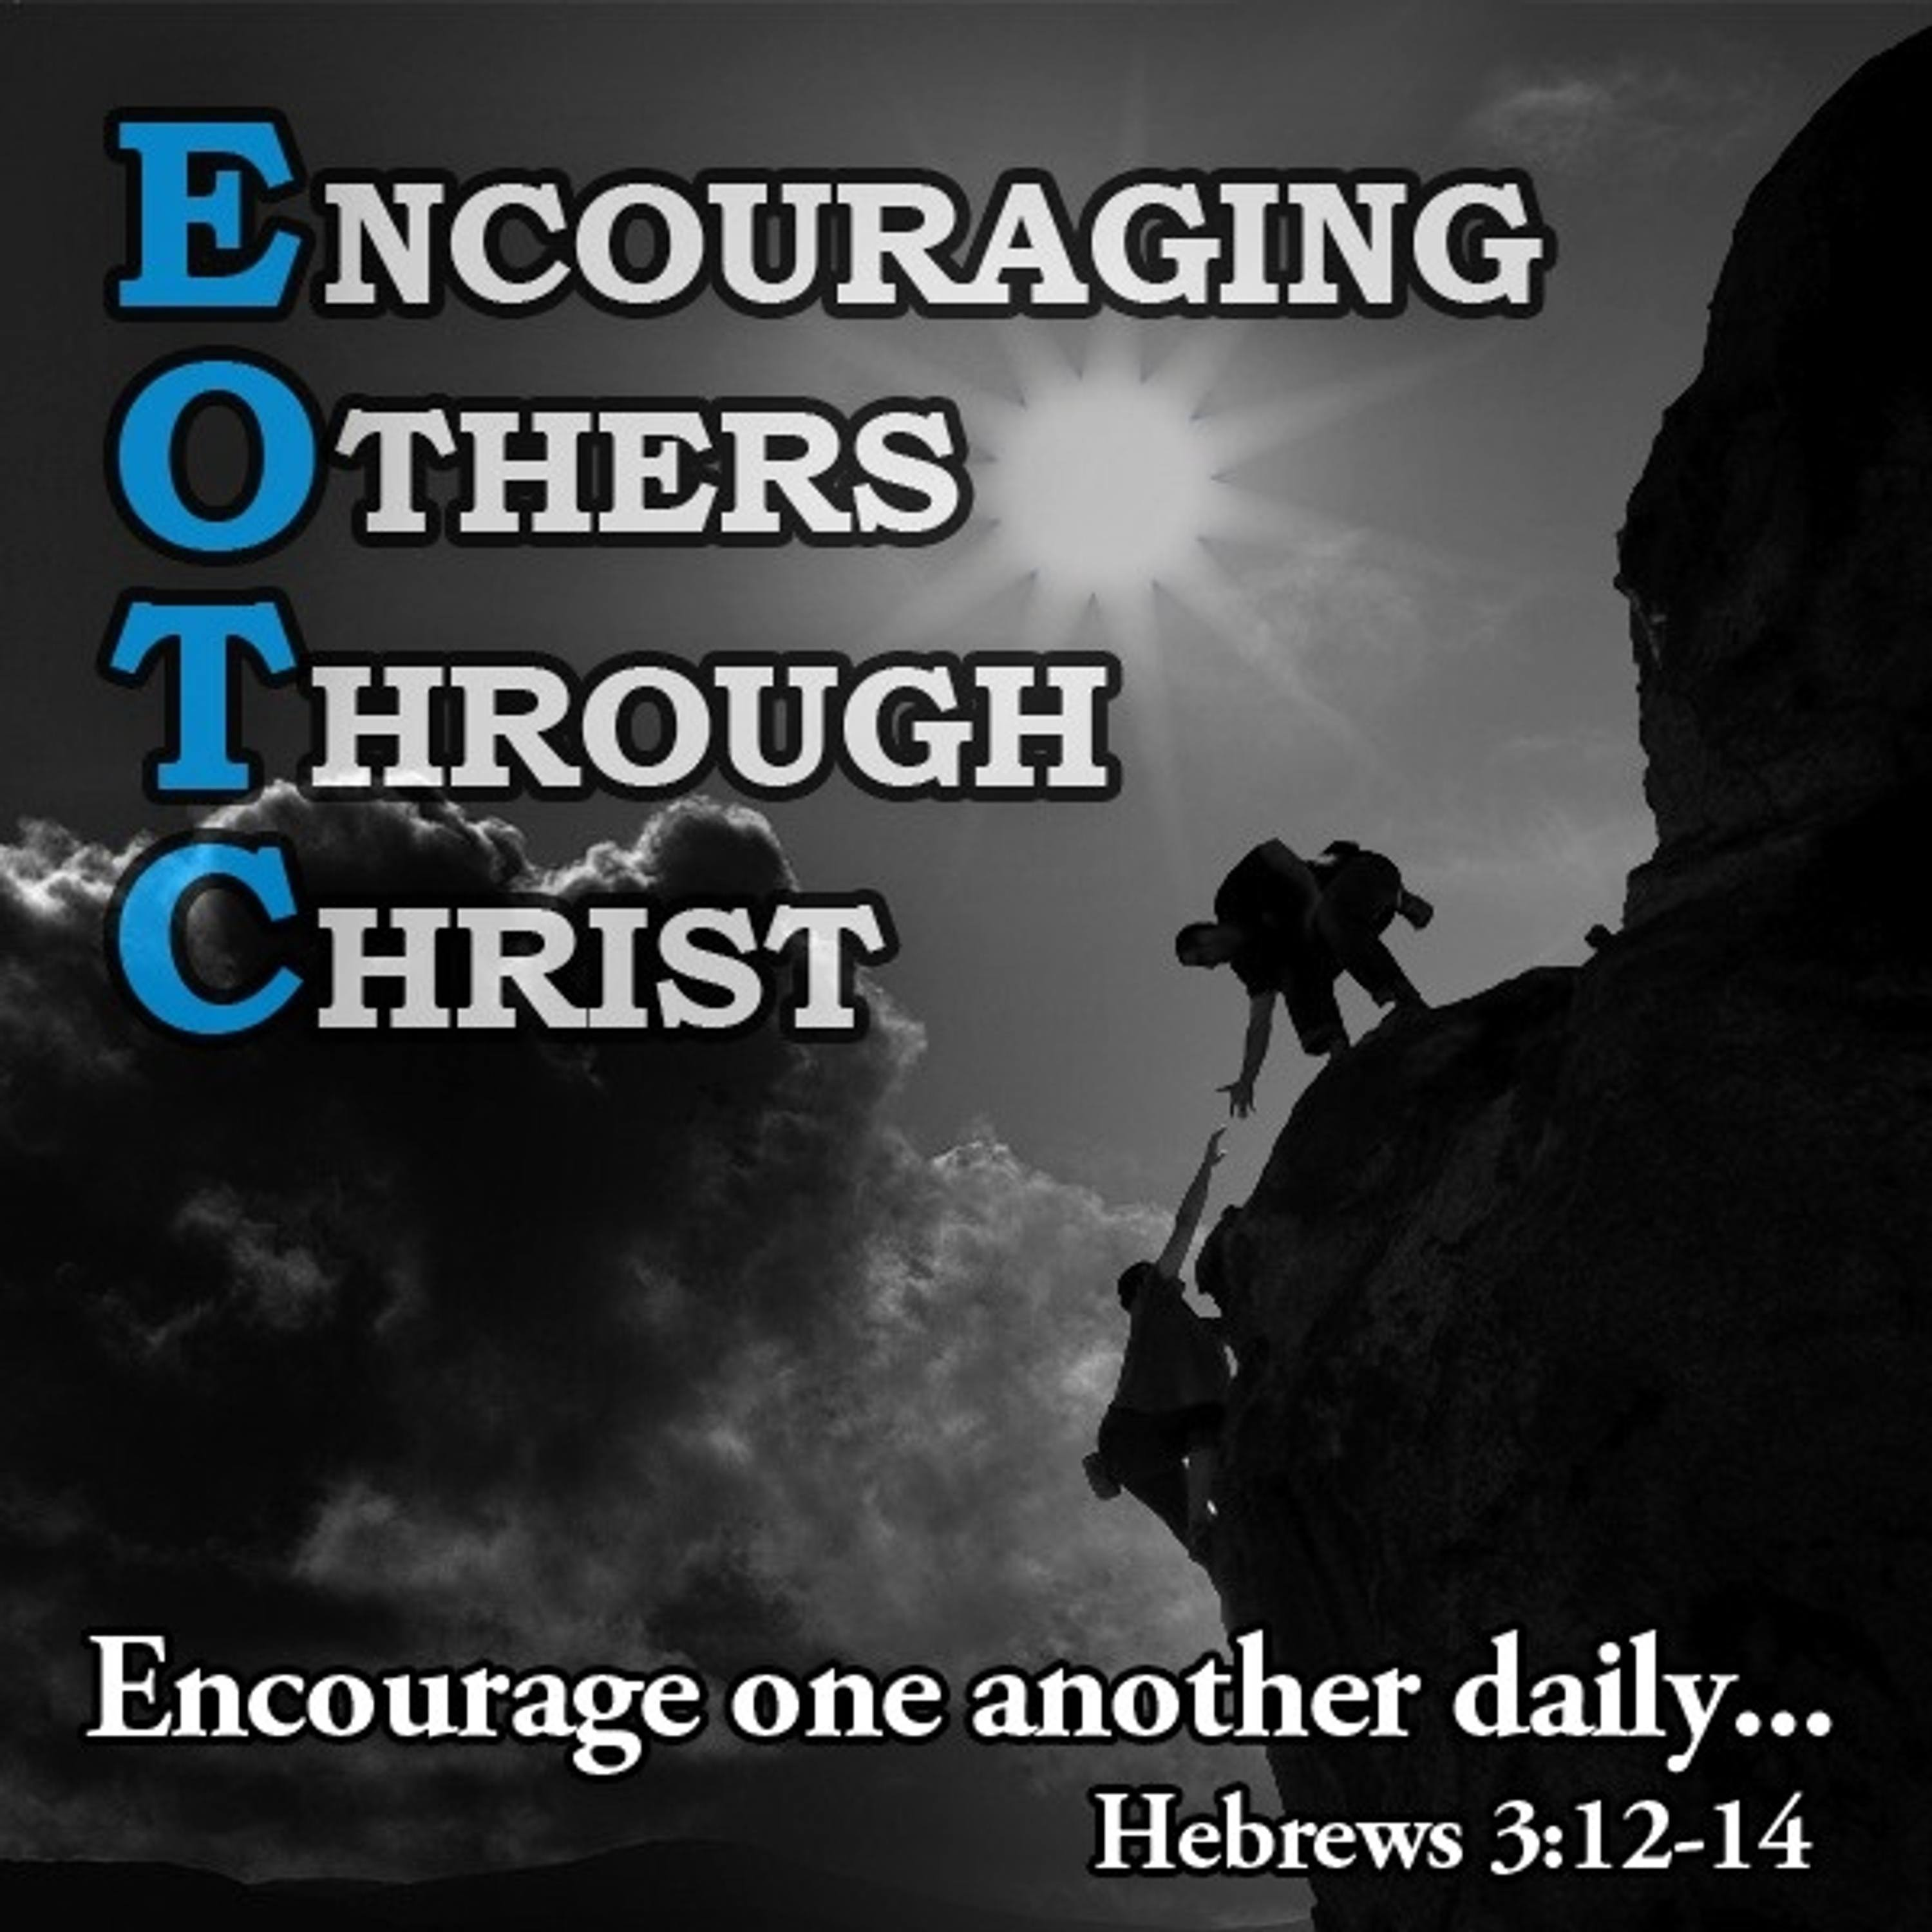 Encouraging Others Through Christ